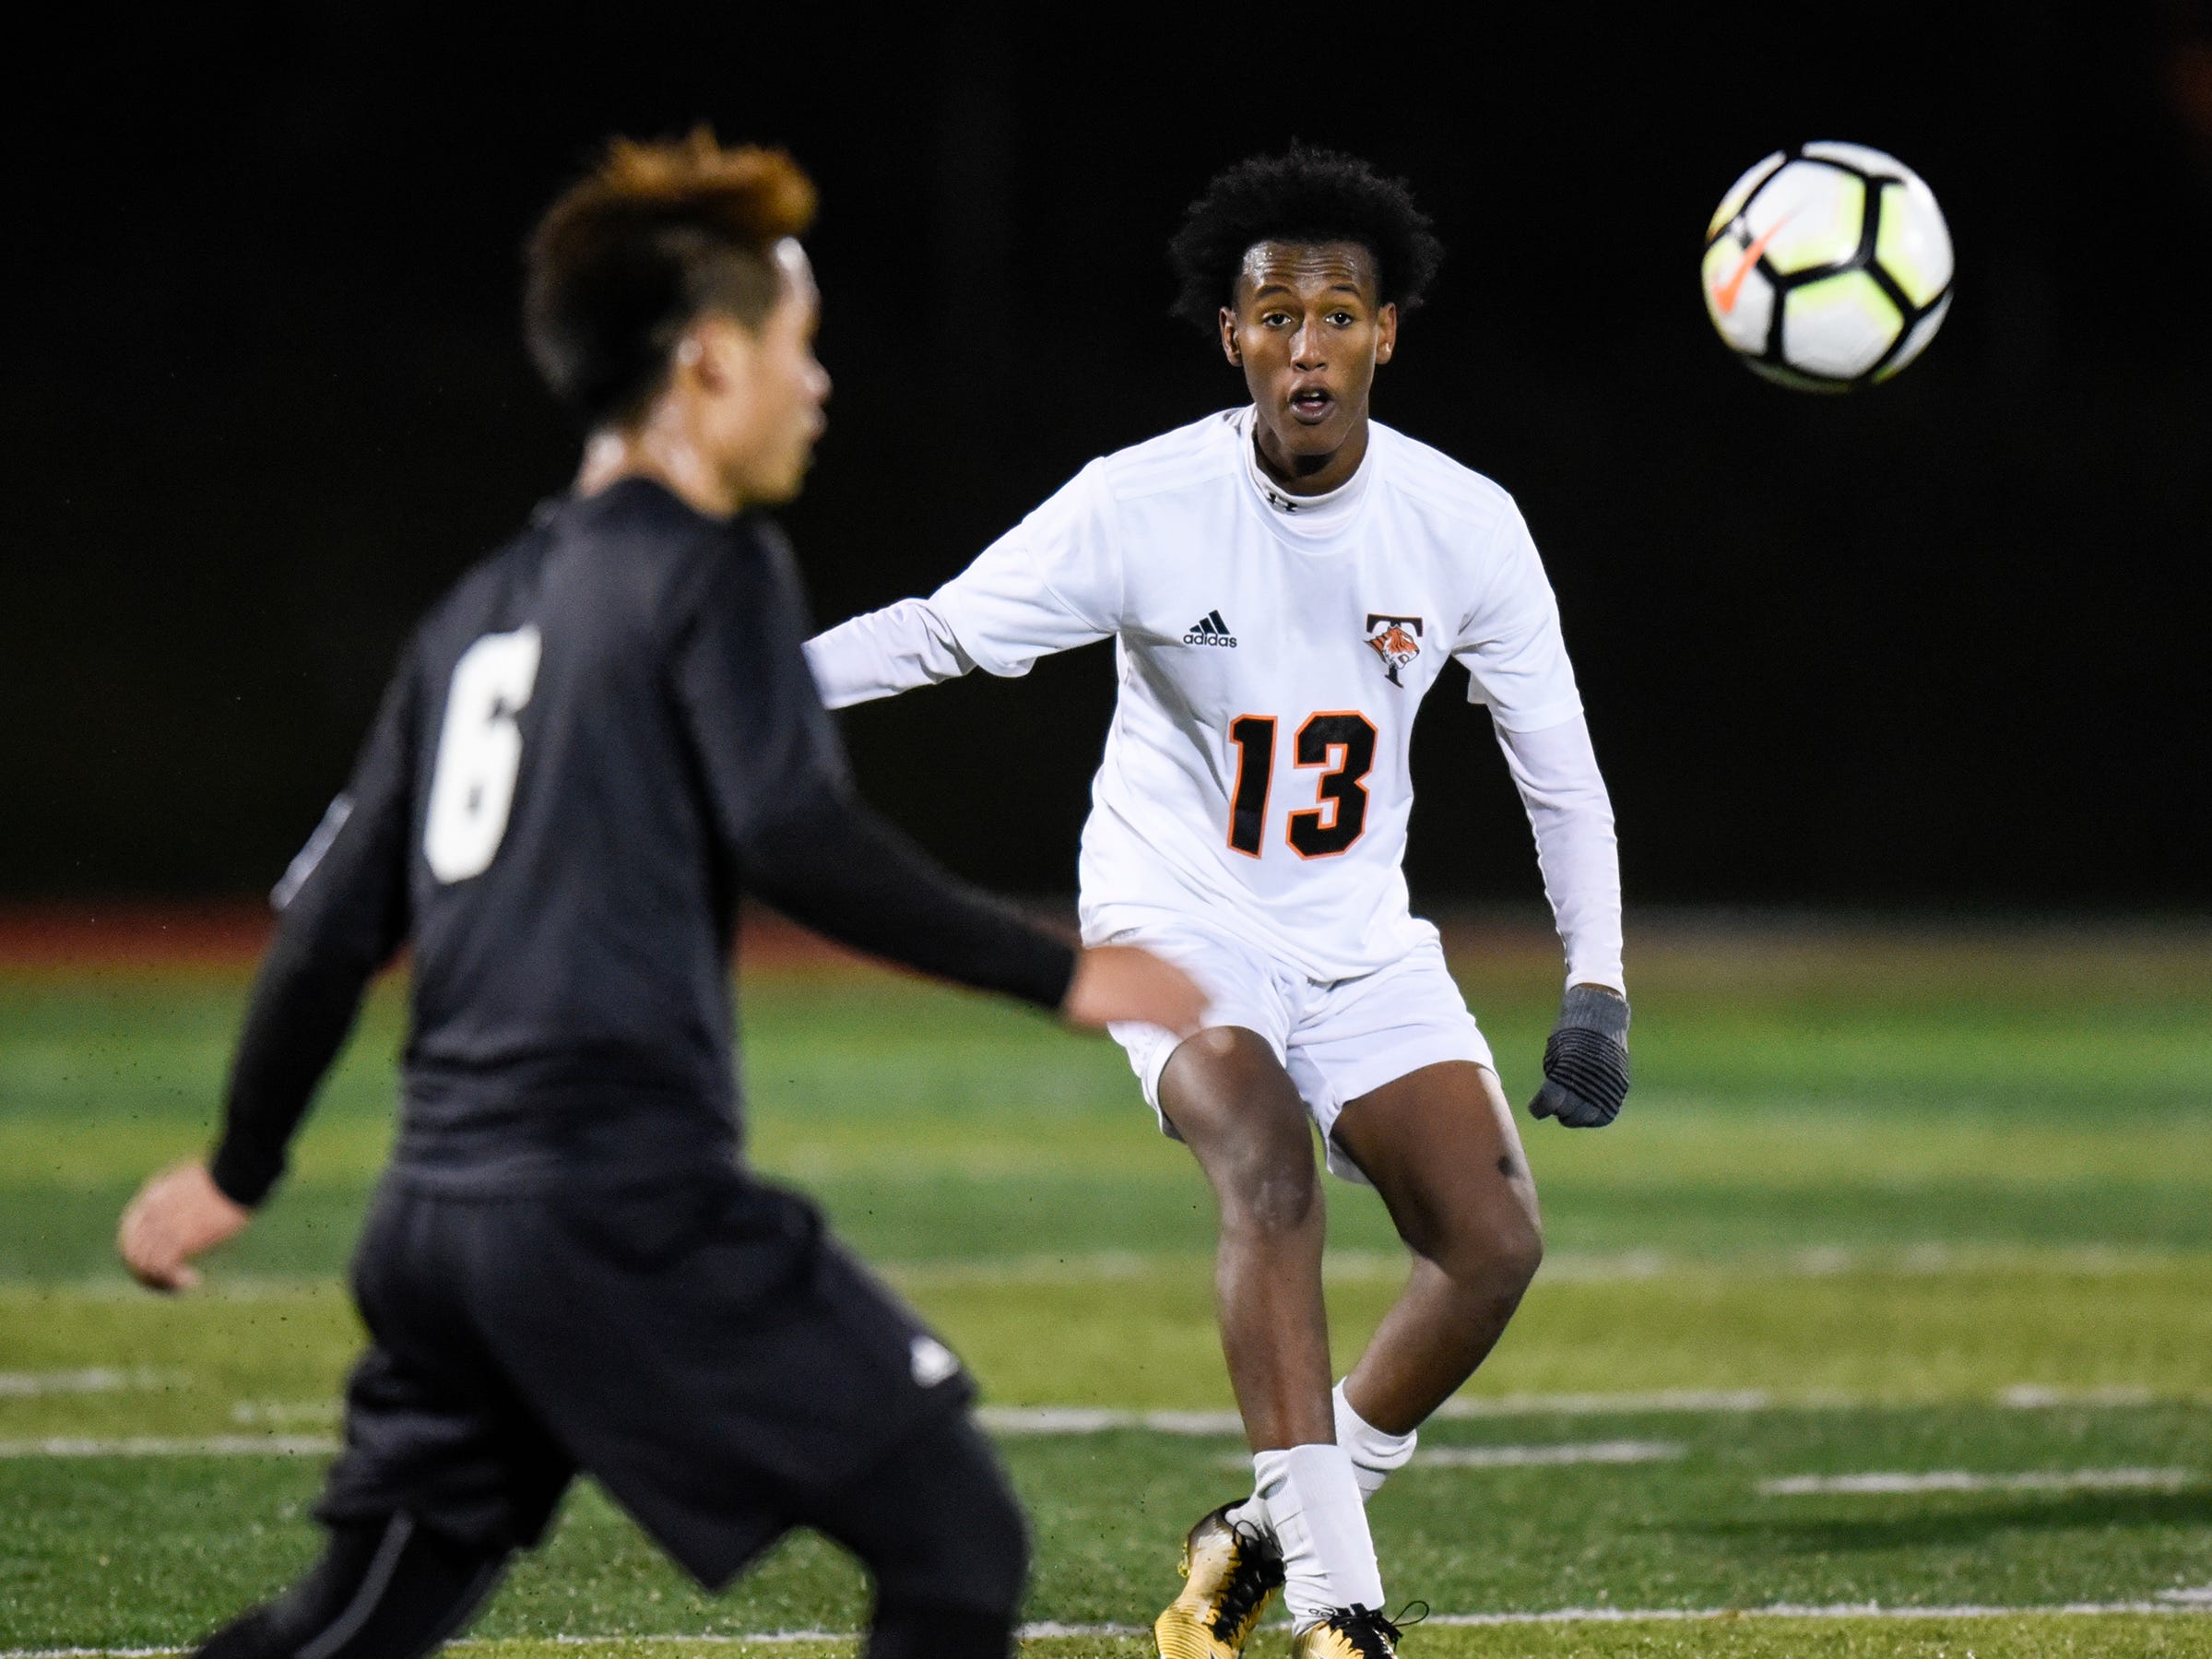 Tech's Abdisahal Elmi focuses on the ball during the Thursday, Oct. 25, Class 2A state quarterfinal game at Husky Stadium in St. Cloud.